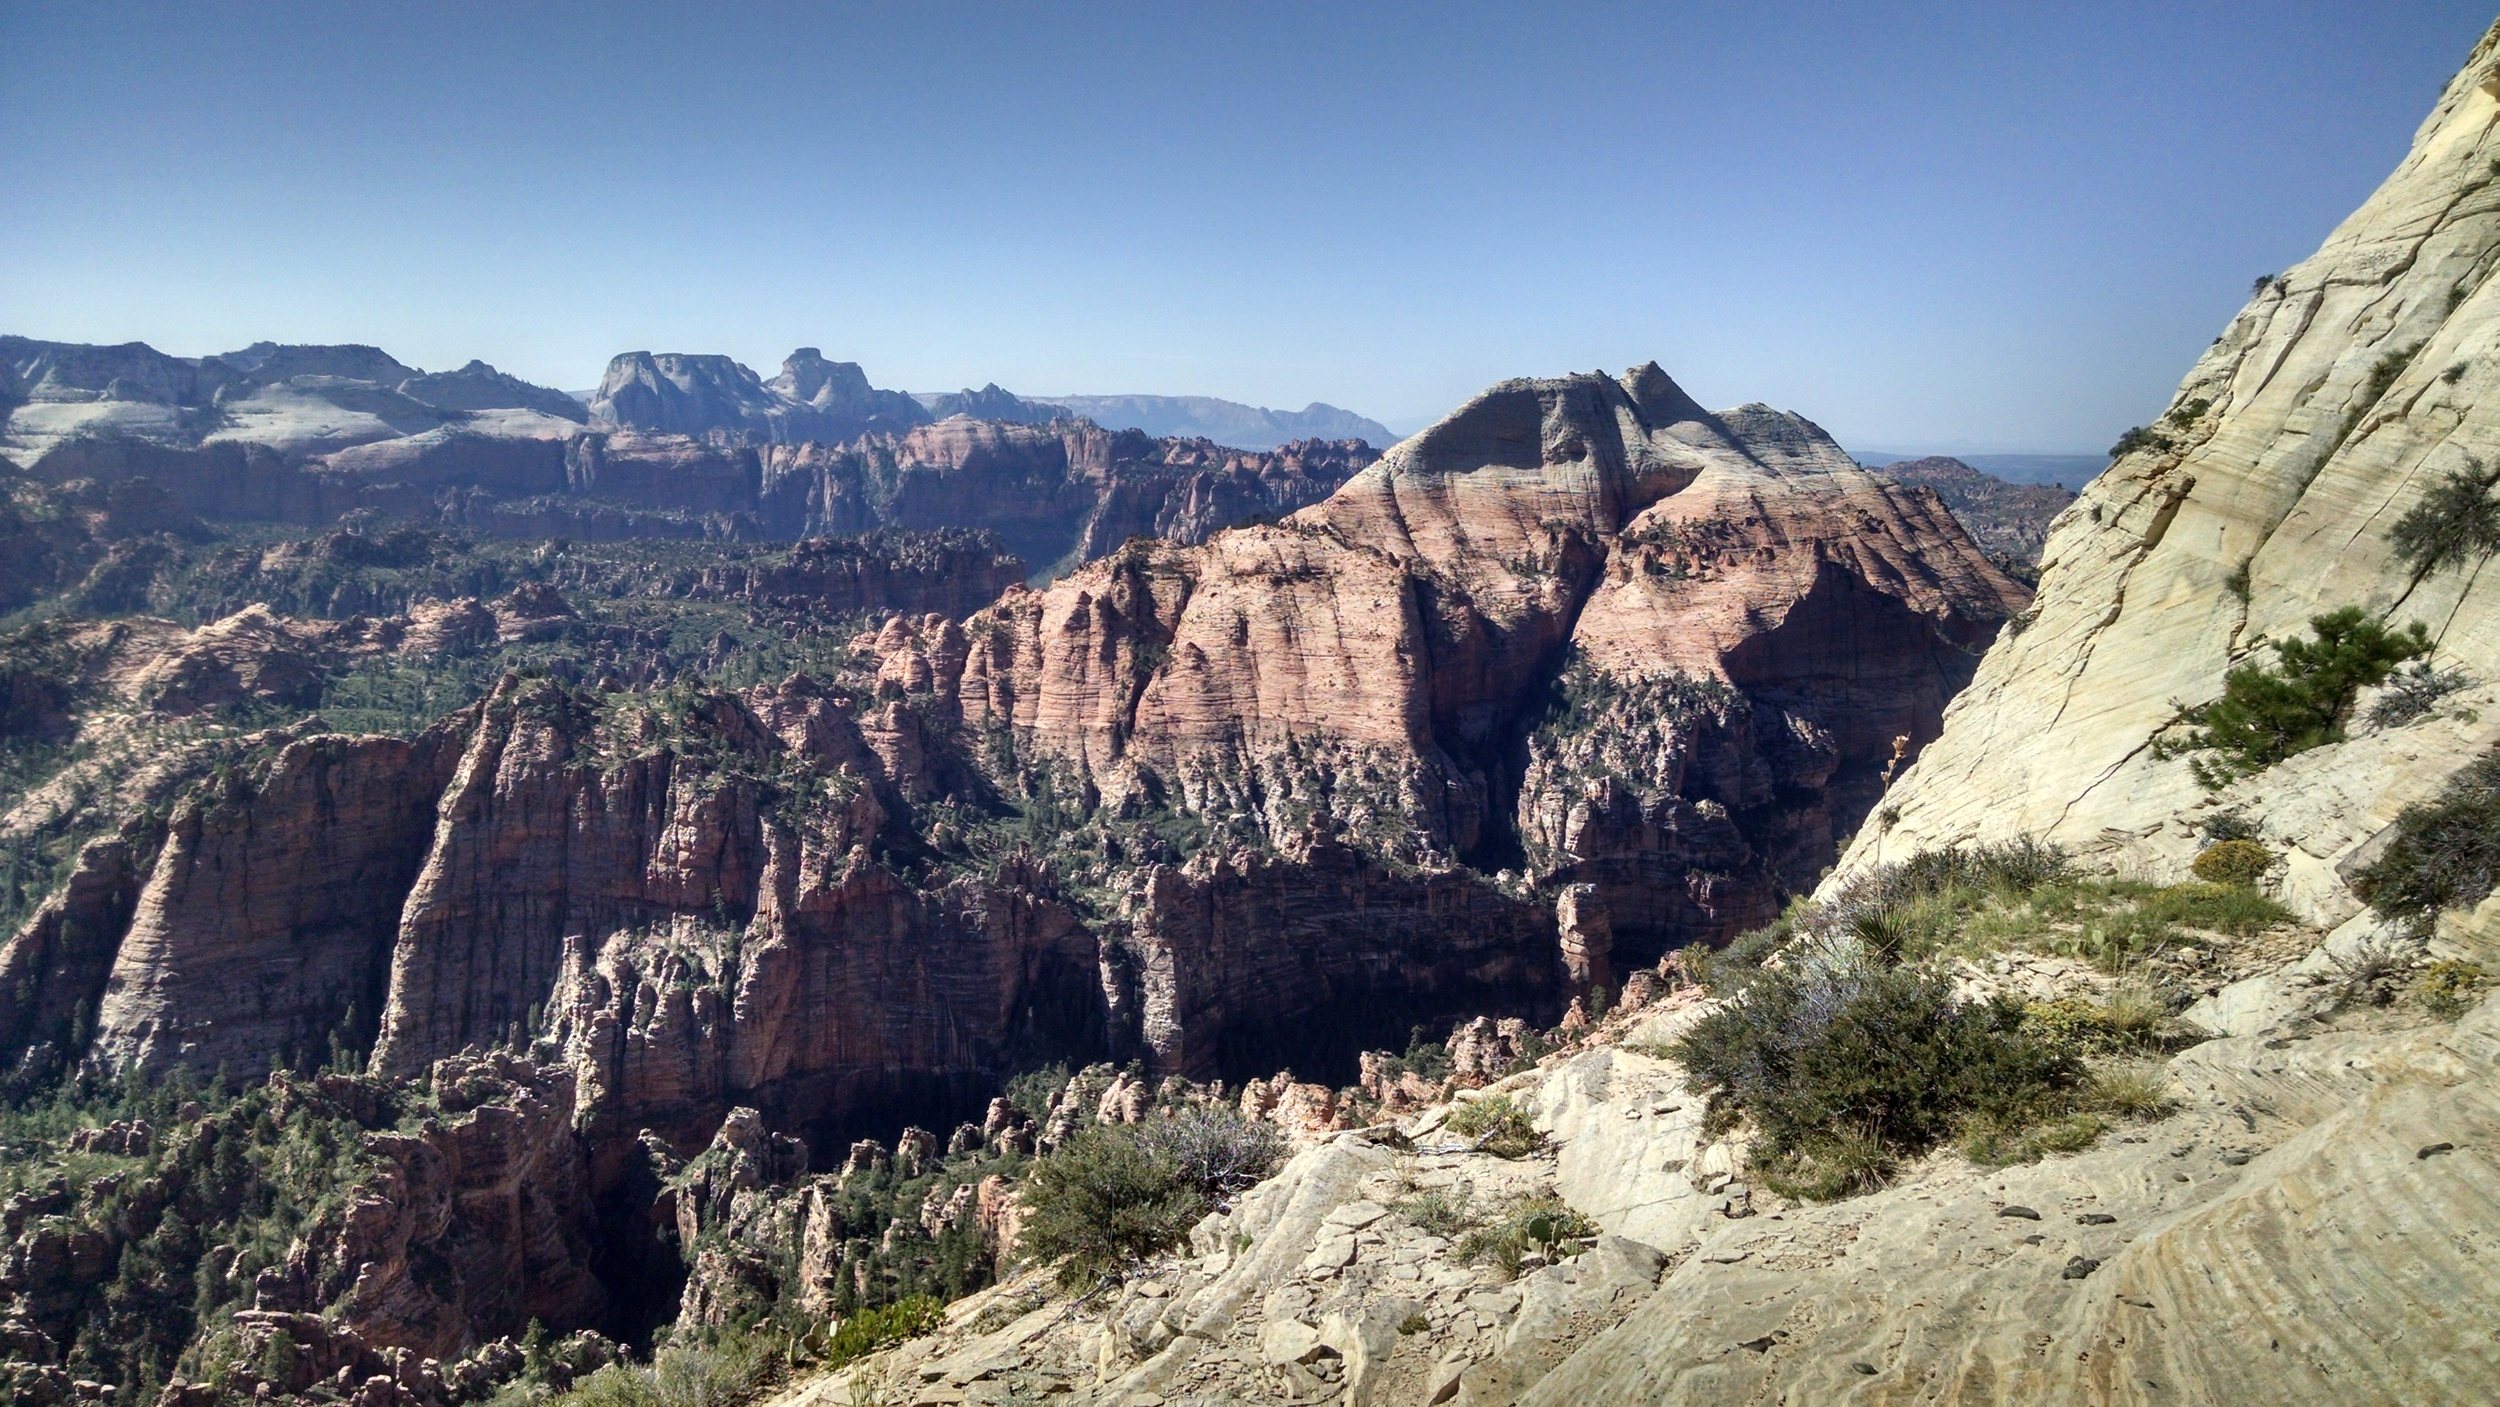 Saddle View South.  South Guardian Angel, Main Zion Canyon in distance